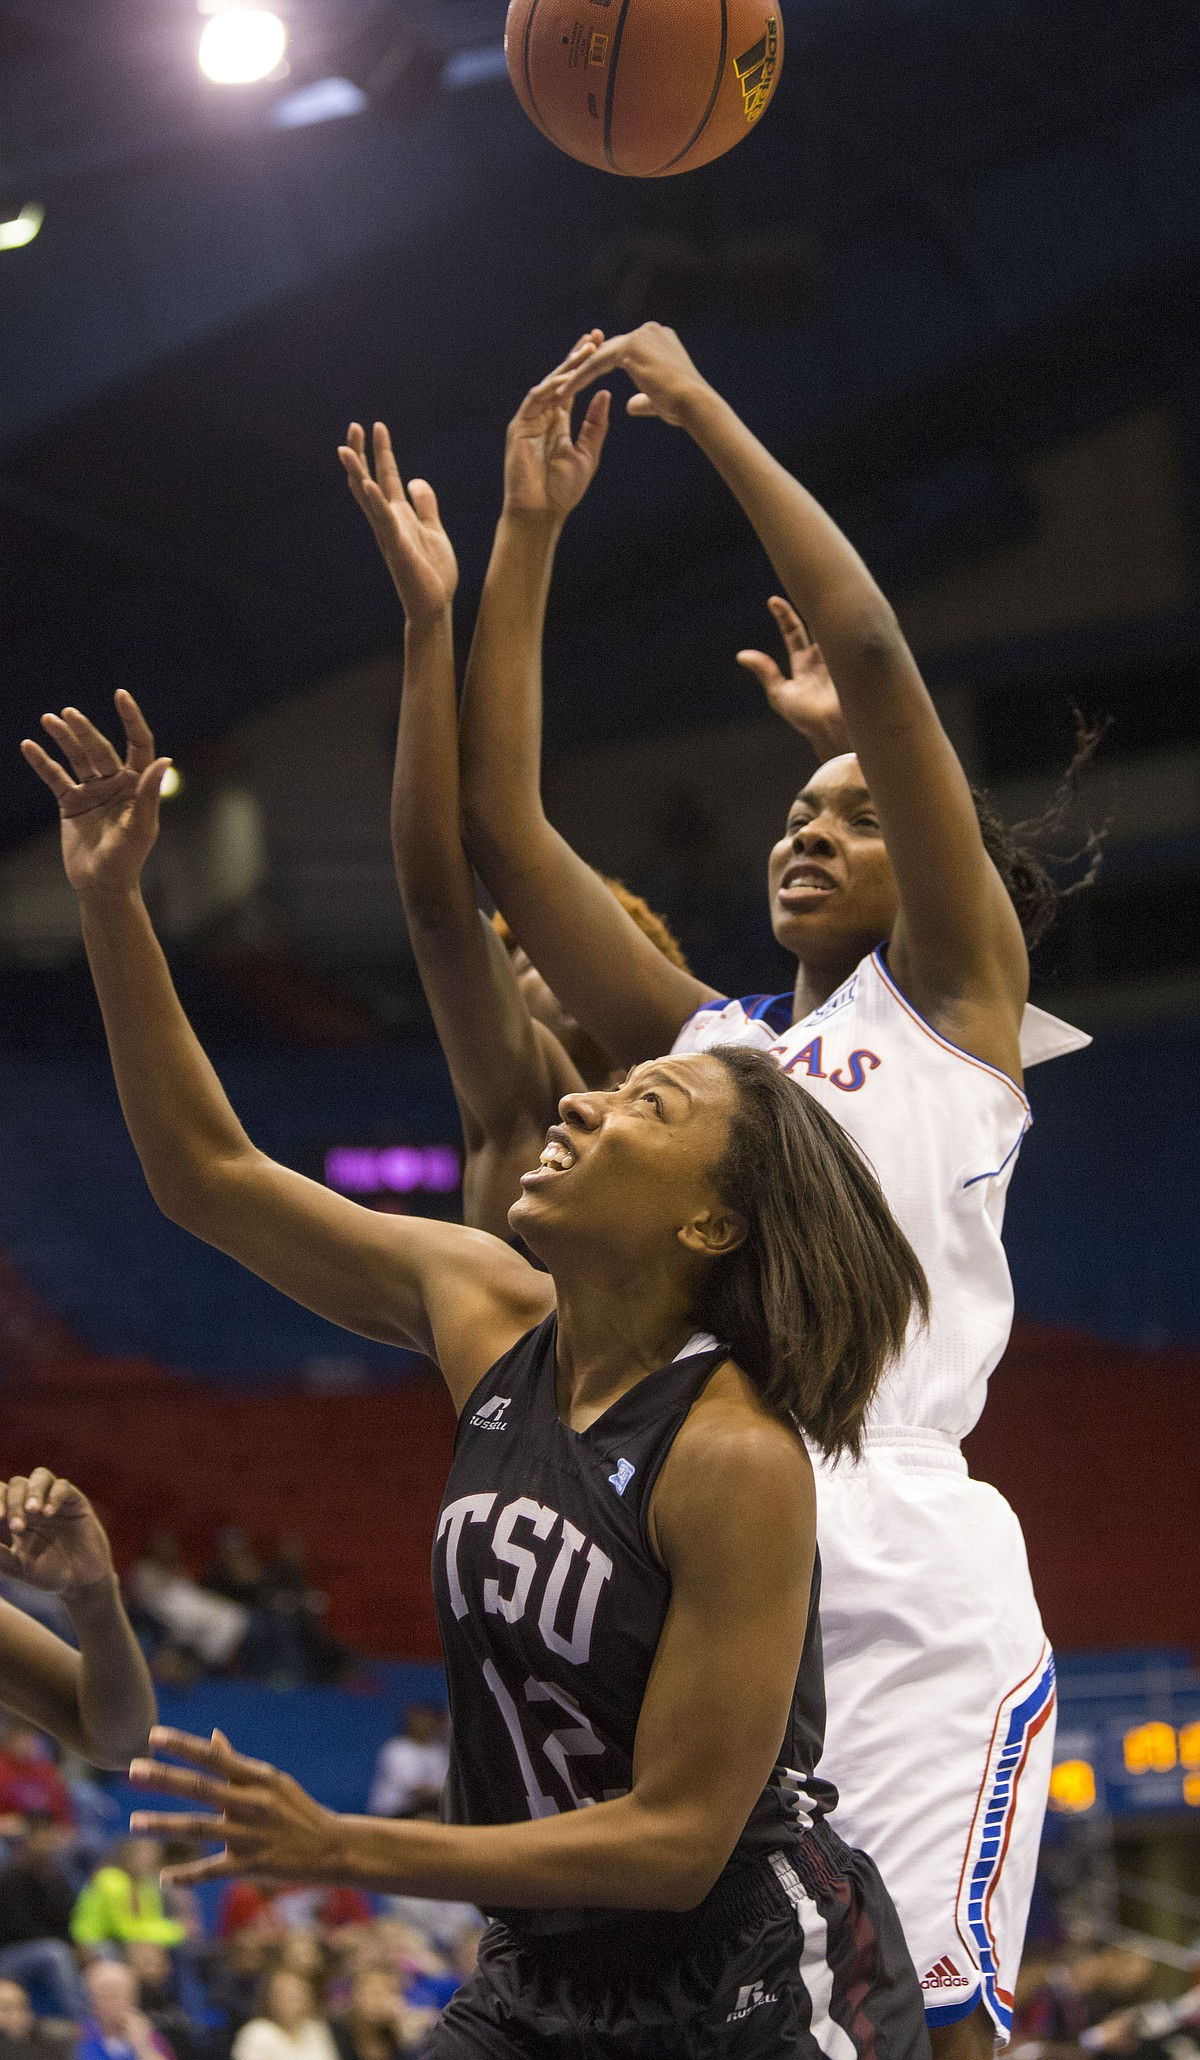 Kansas womens basketball vs. Texas Southern | KUsports.com